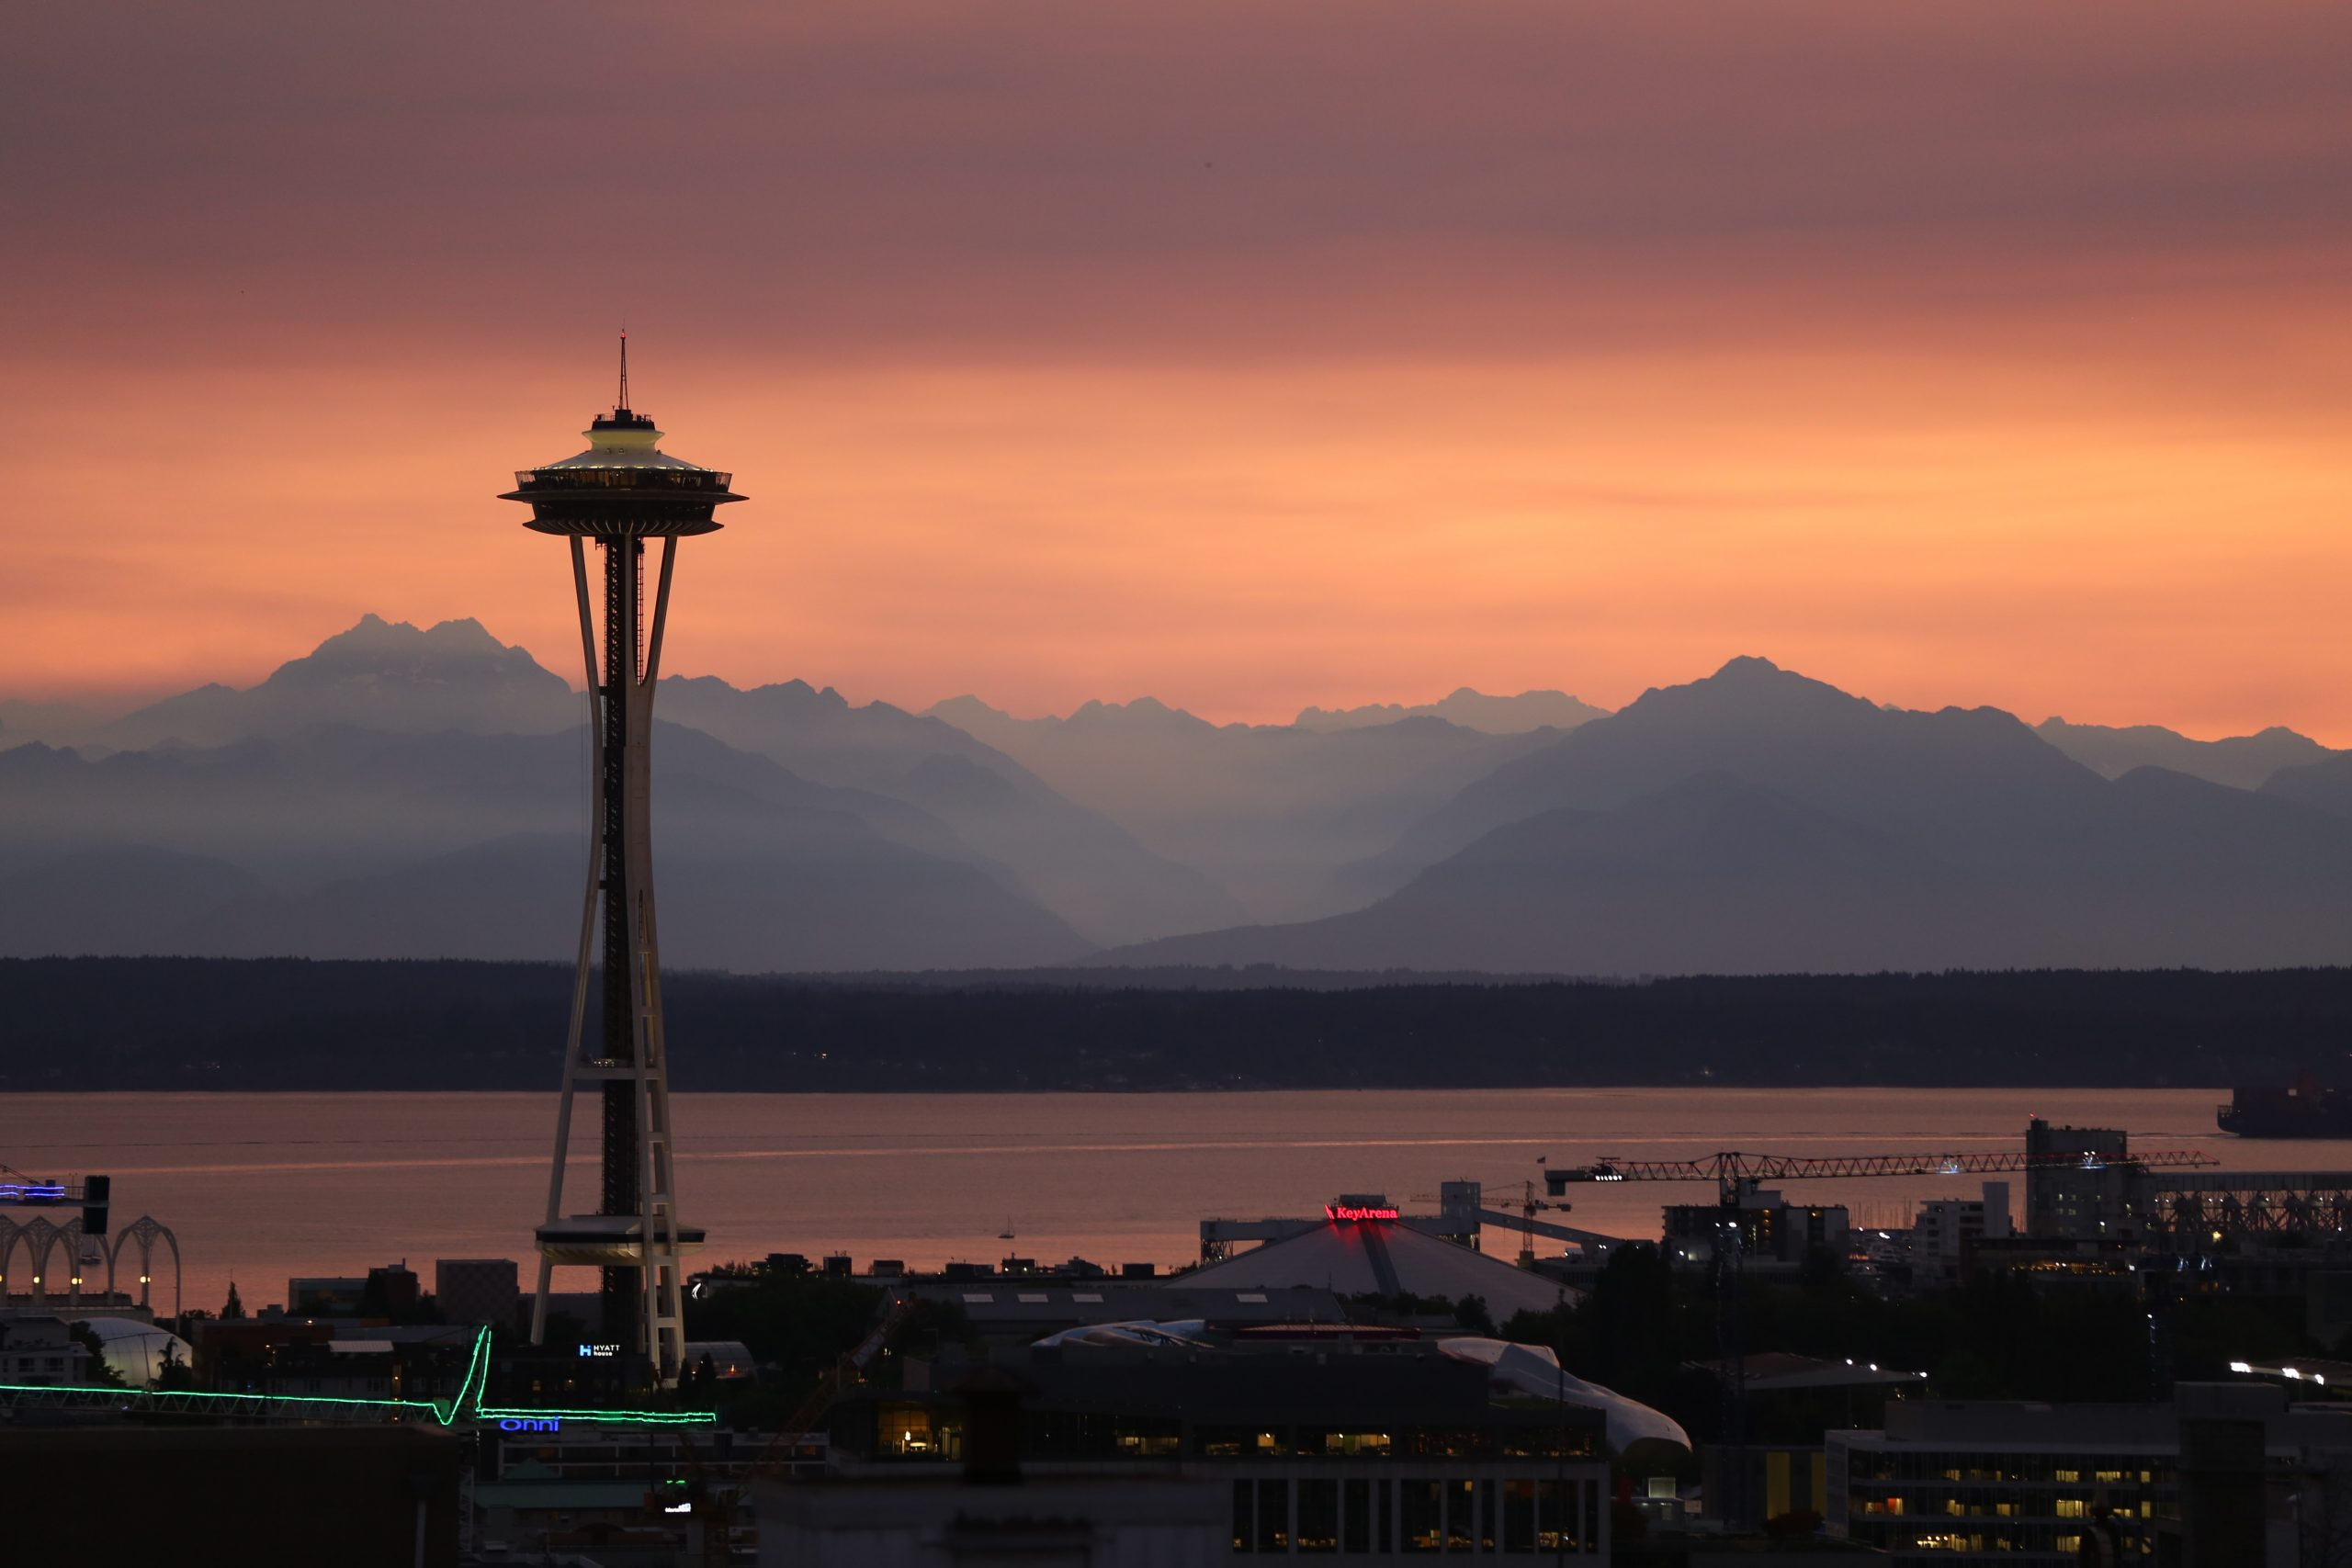 Sunset over the Olympic Mountains, Elliot Bay, and Space Needle